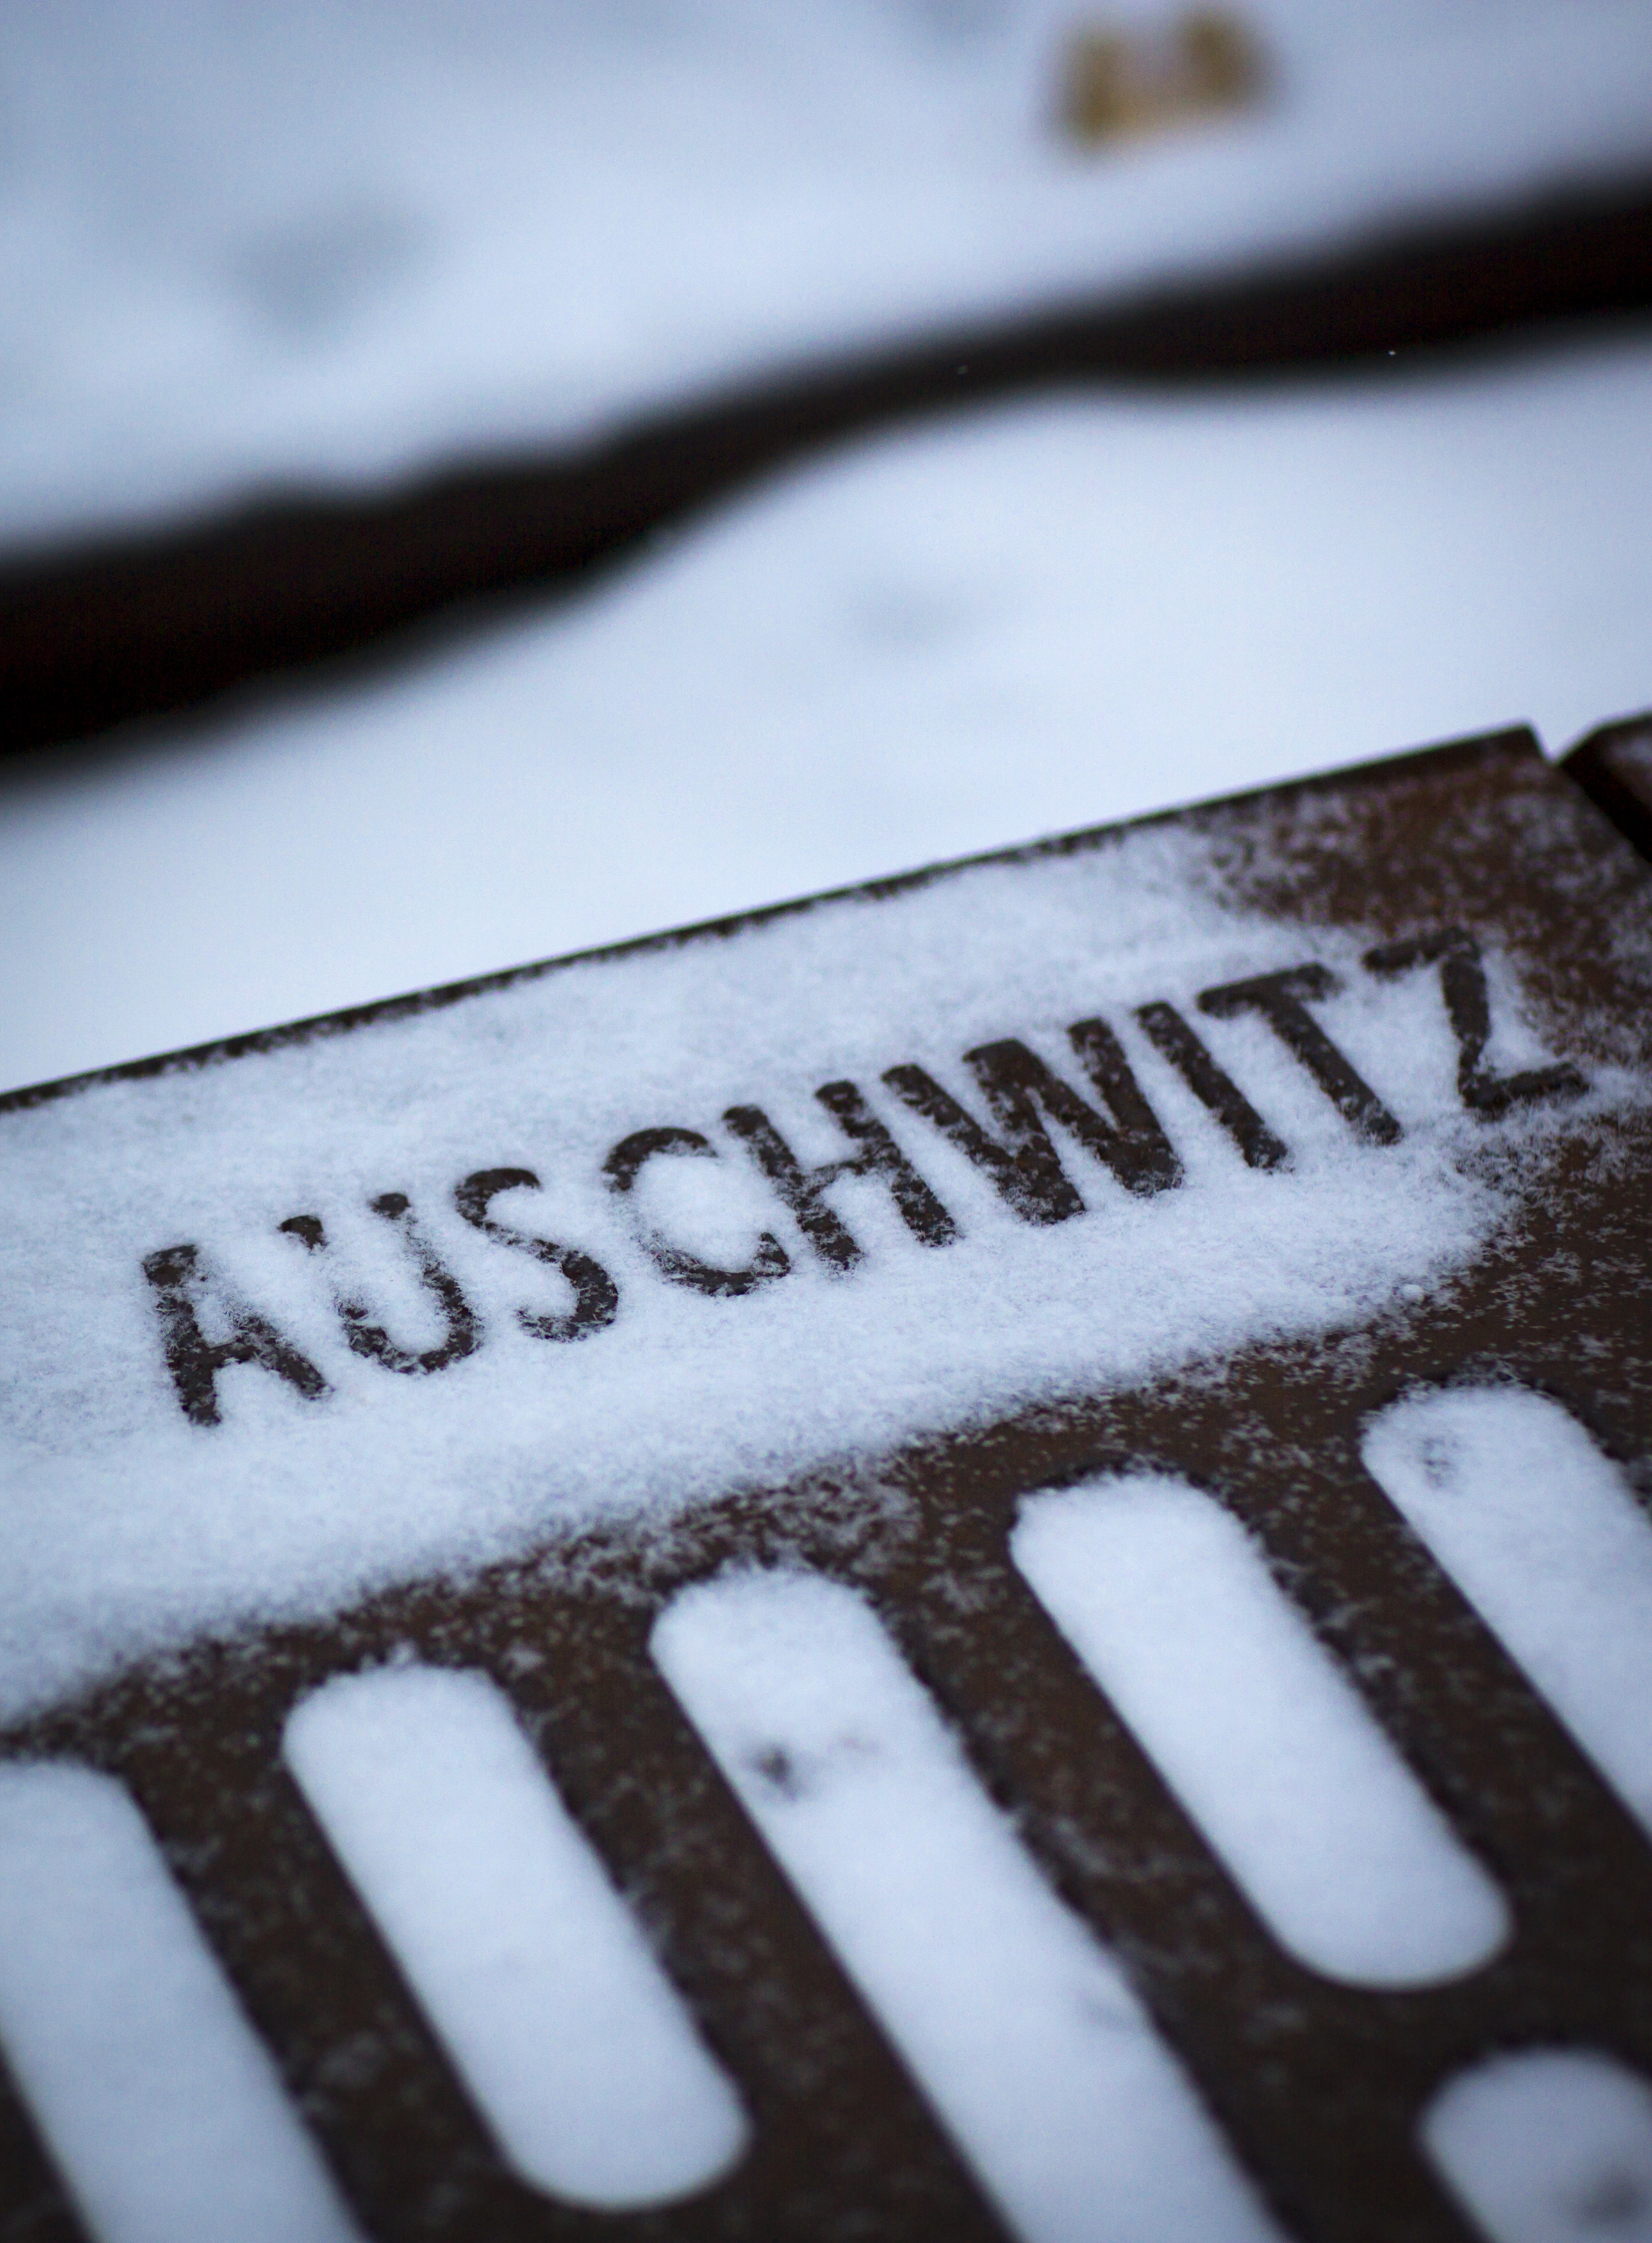 The word Auschwitz, denoting the name of the Nazi concentration camp at the Gleis 17 (platform 17) memorial commemorating Jews who were deported from Grunewald train station during World War Two in Berlin January 25, 2014.